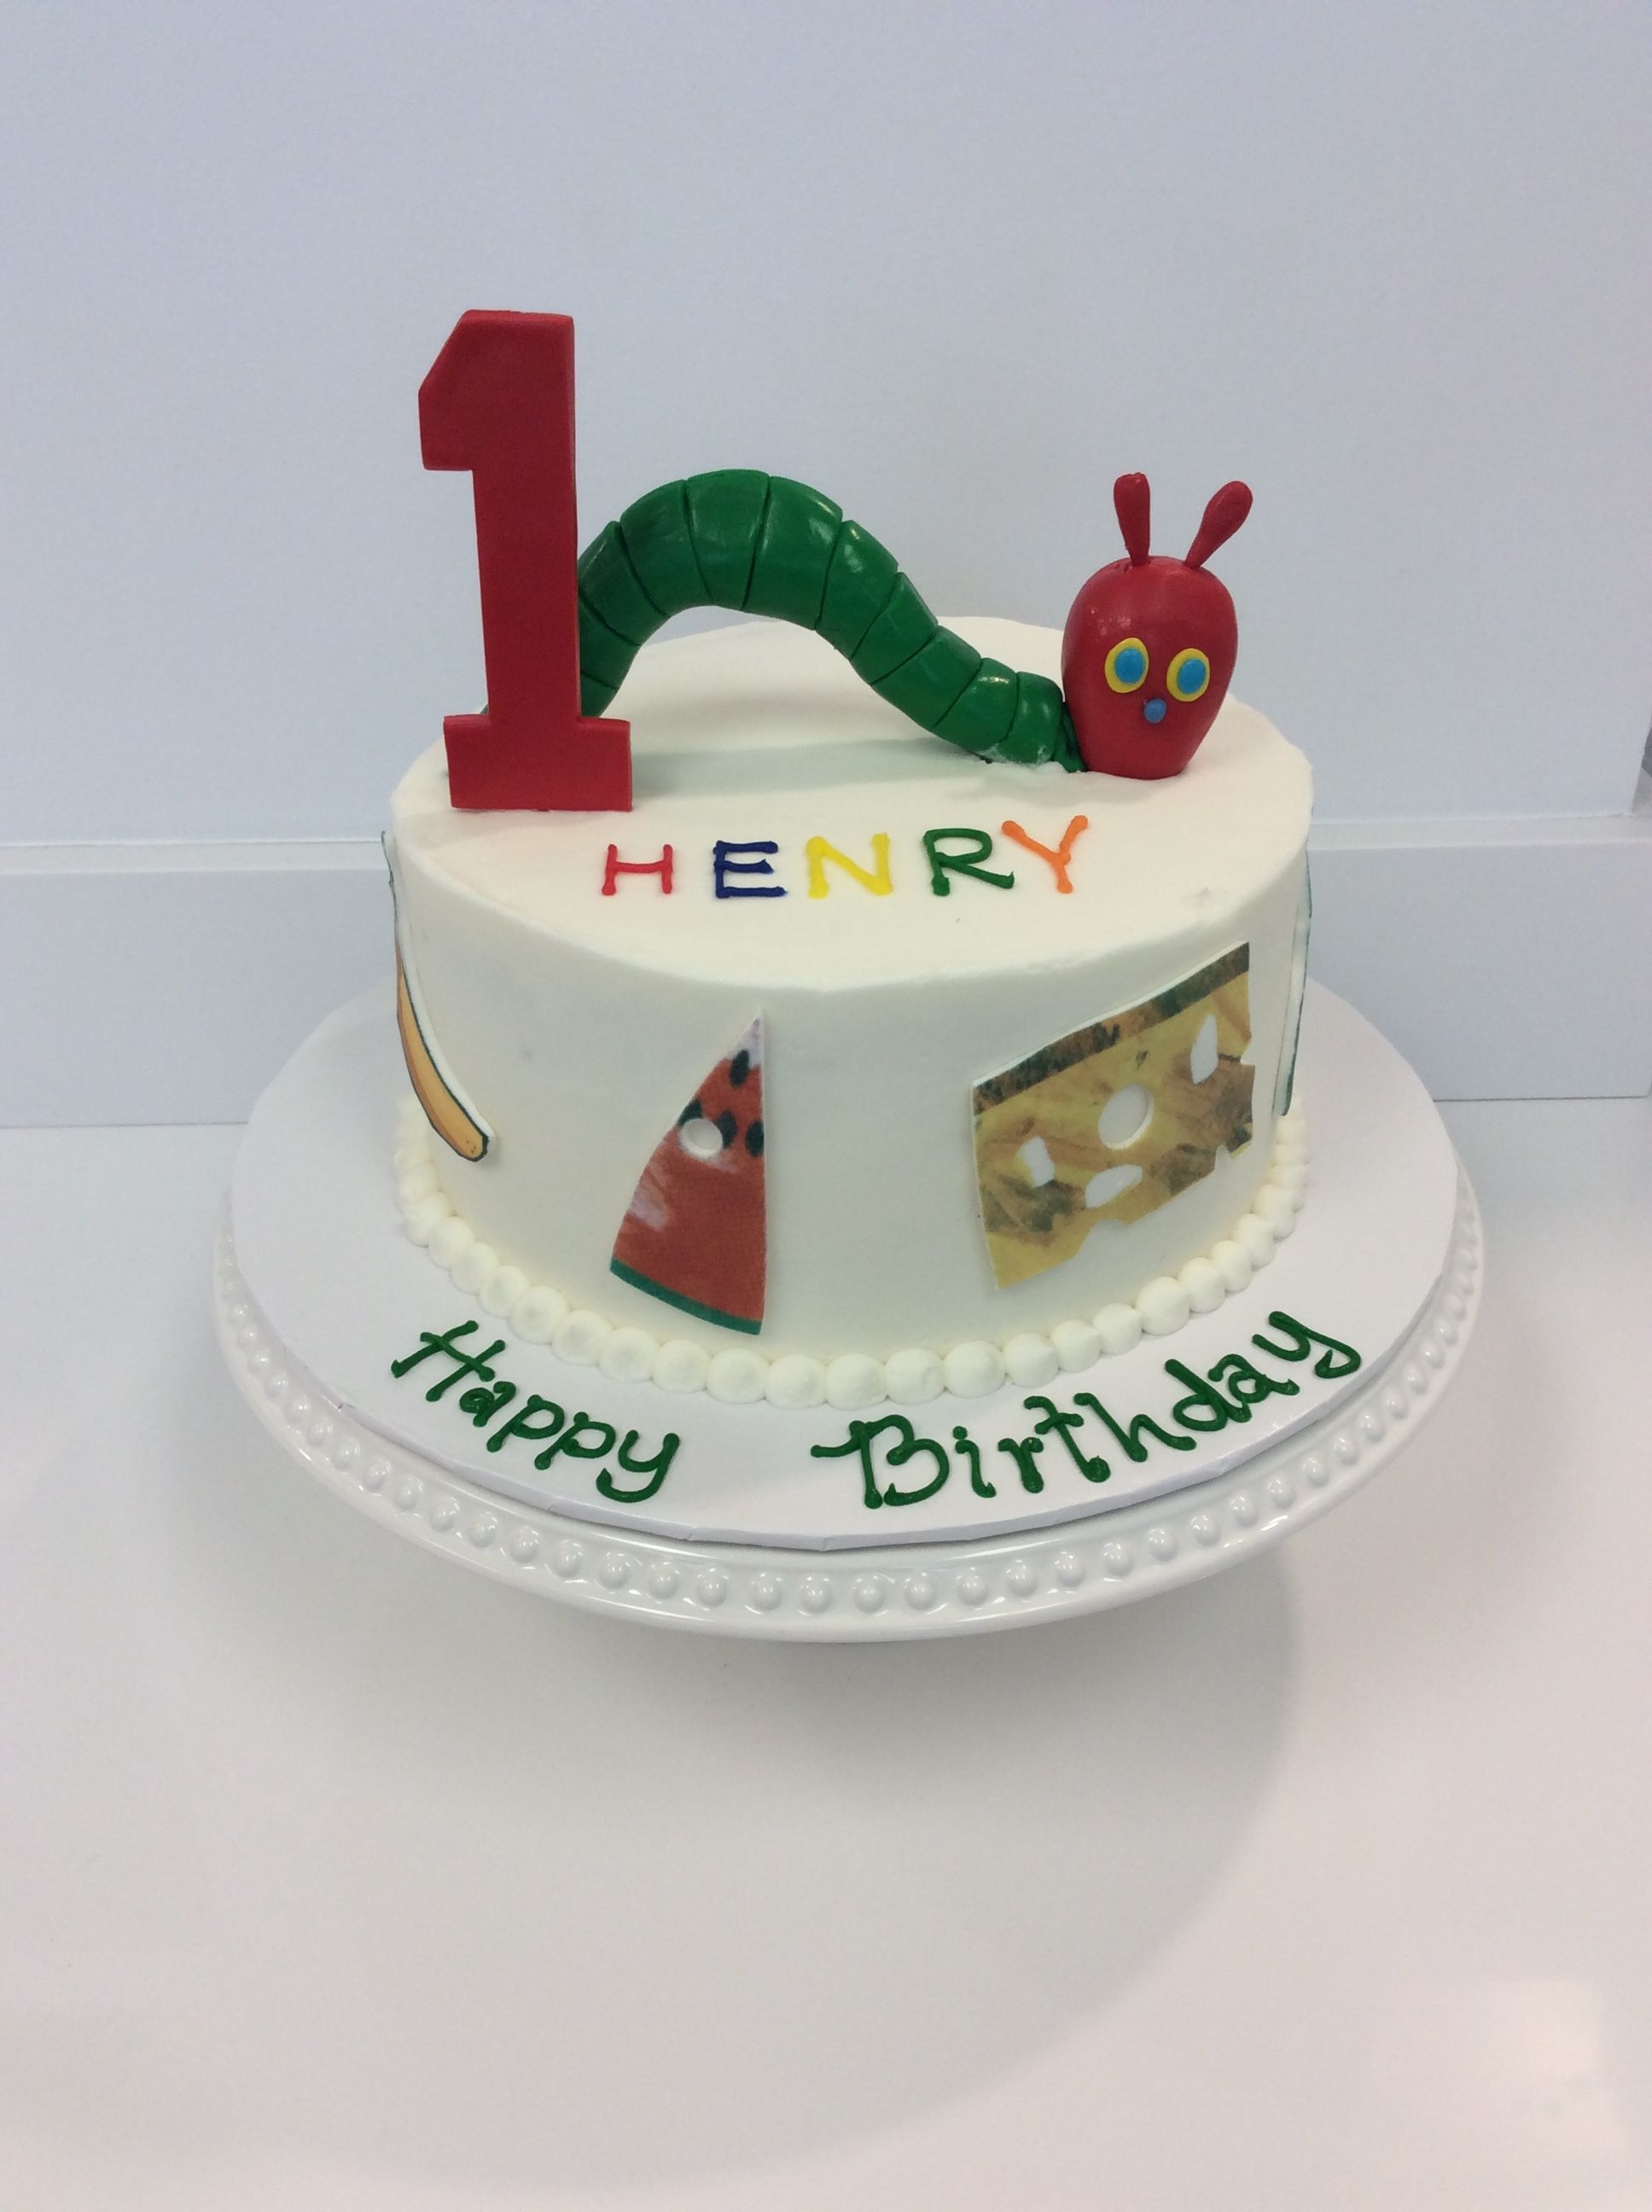 A fun cake themed around the hungry hungry caterpillar